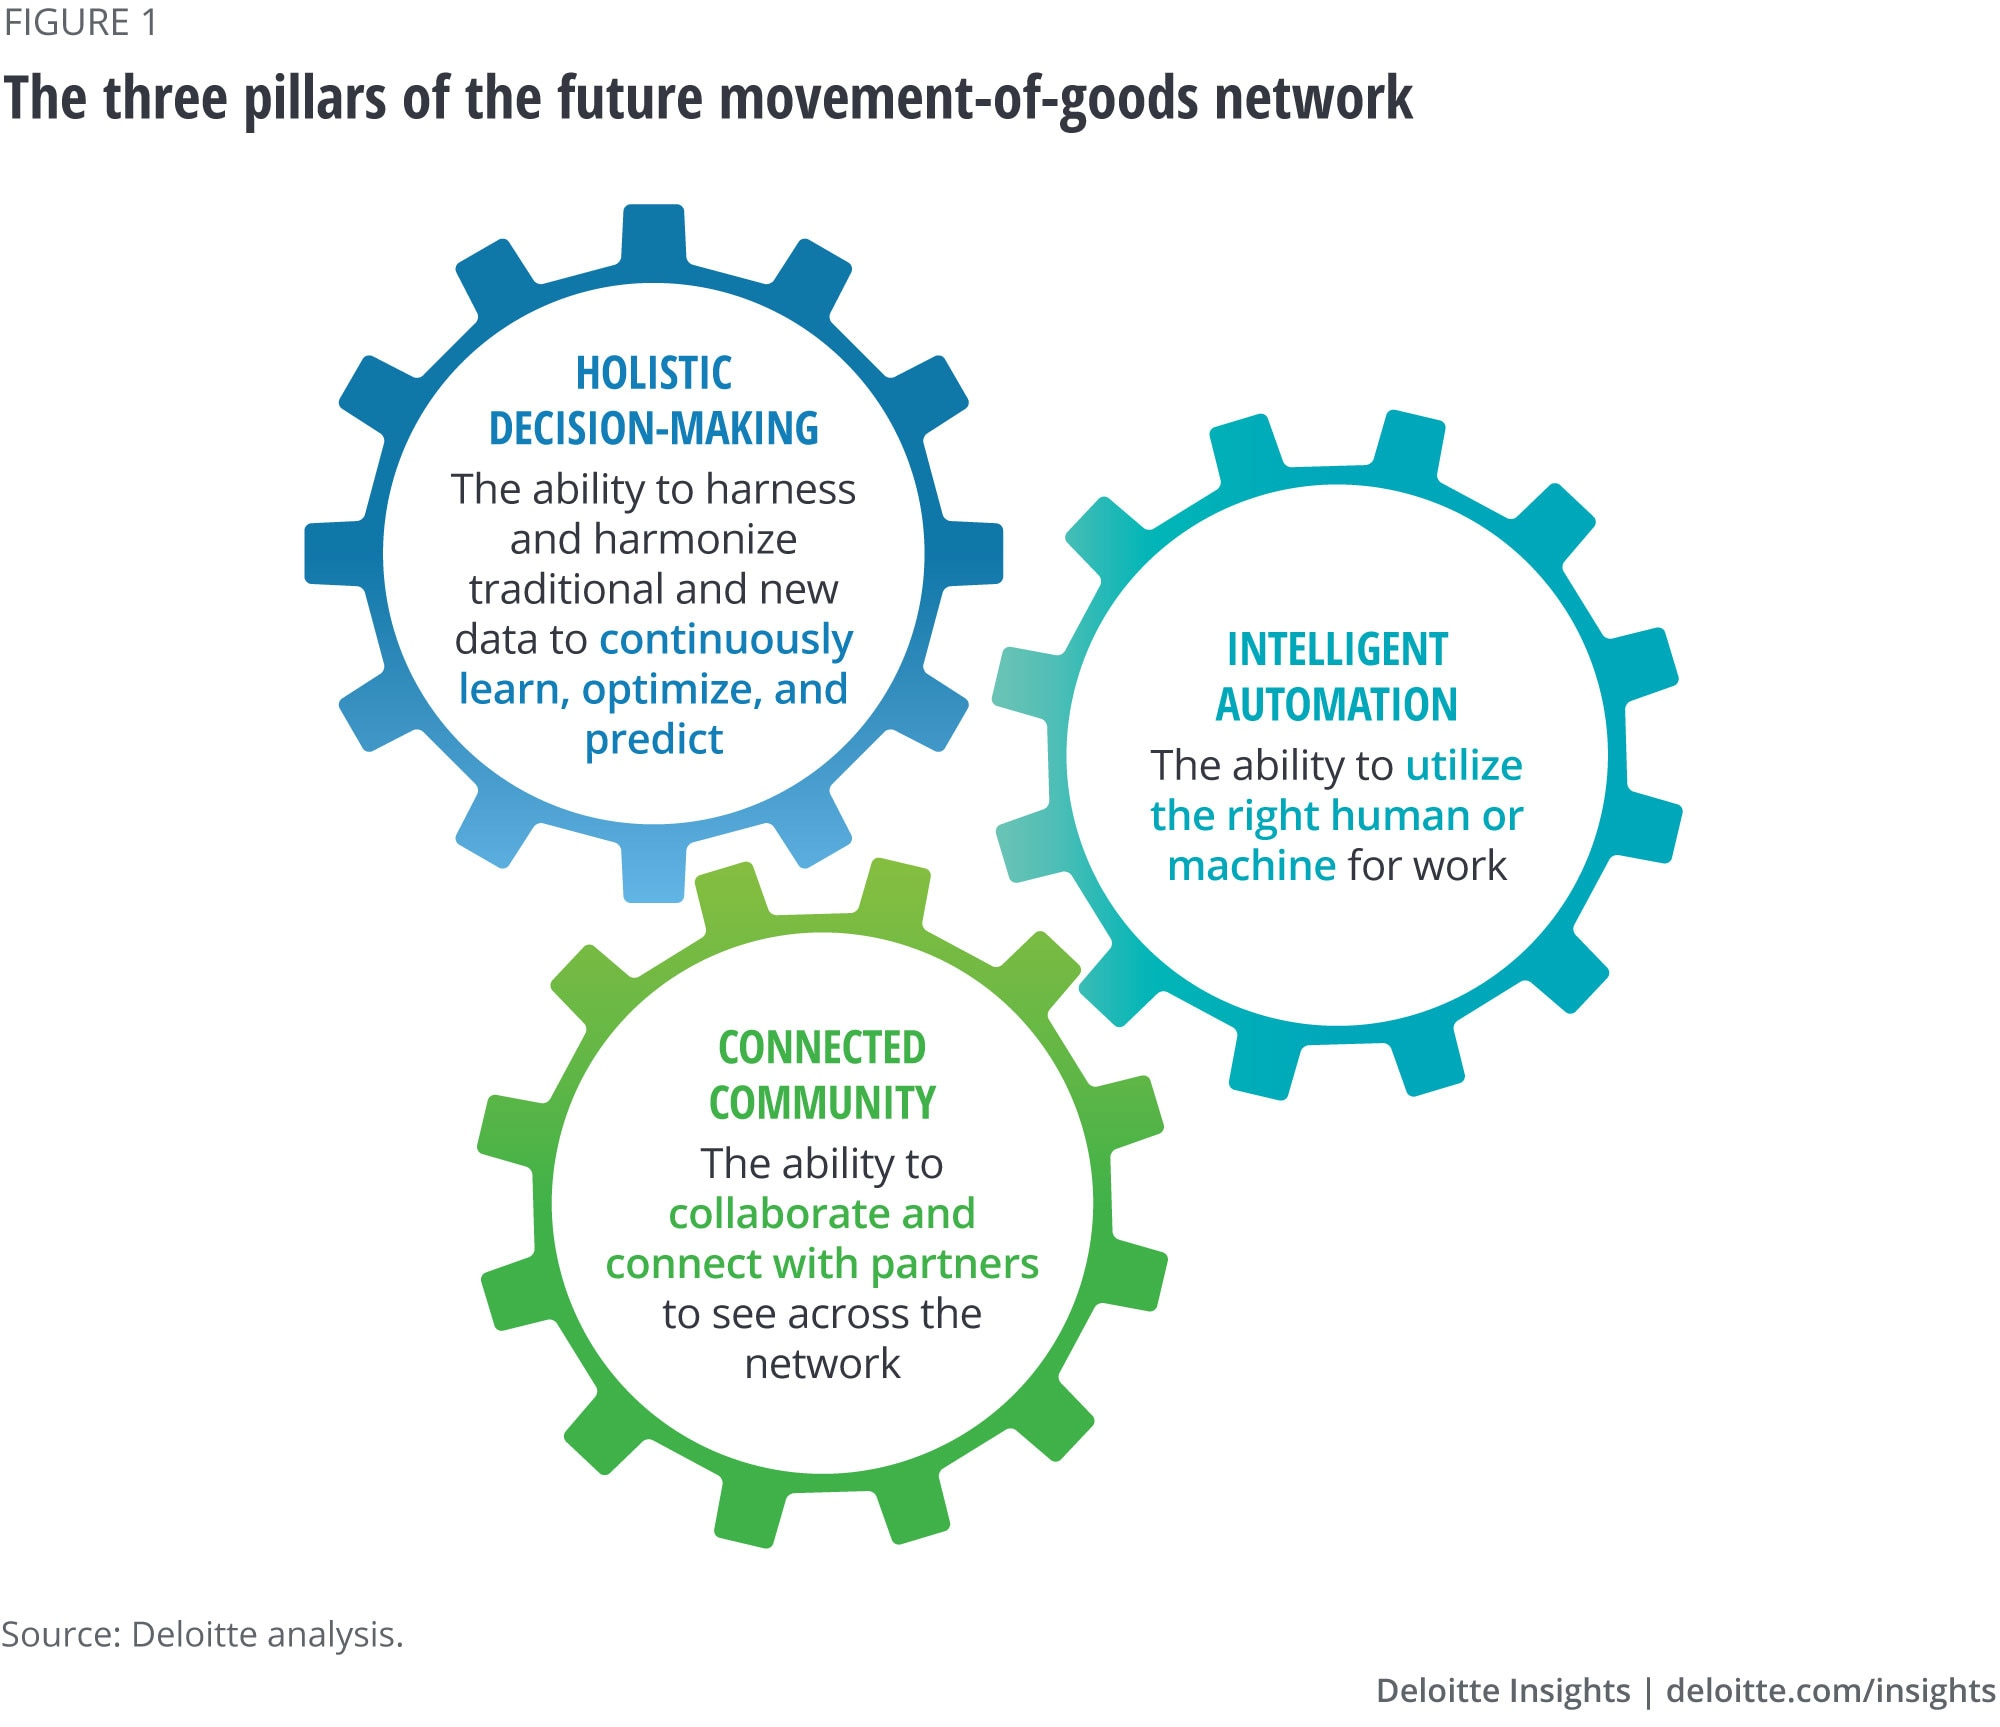 The three pillars of the future movement-of-goods network